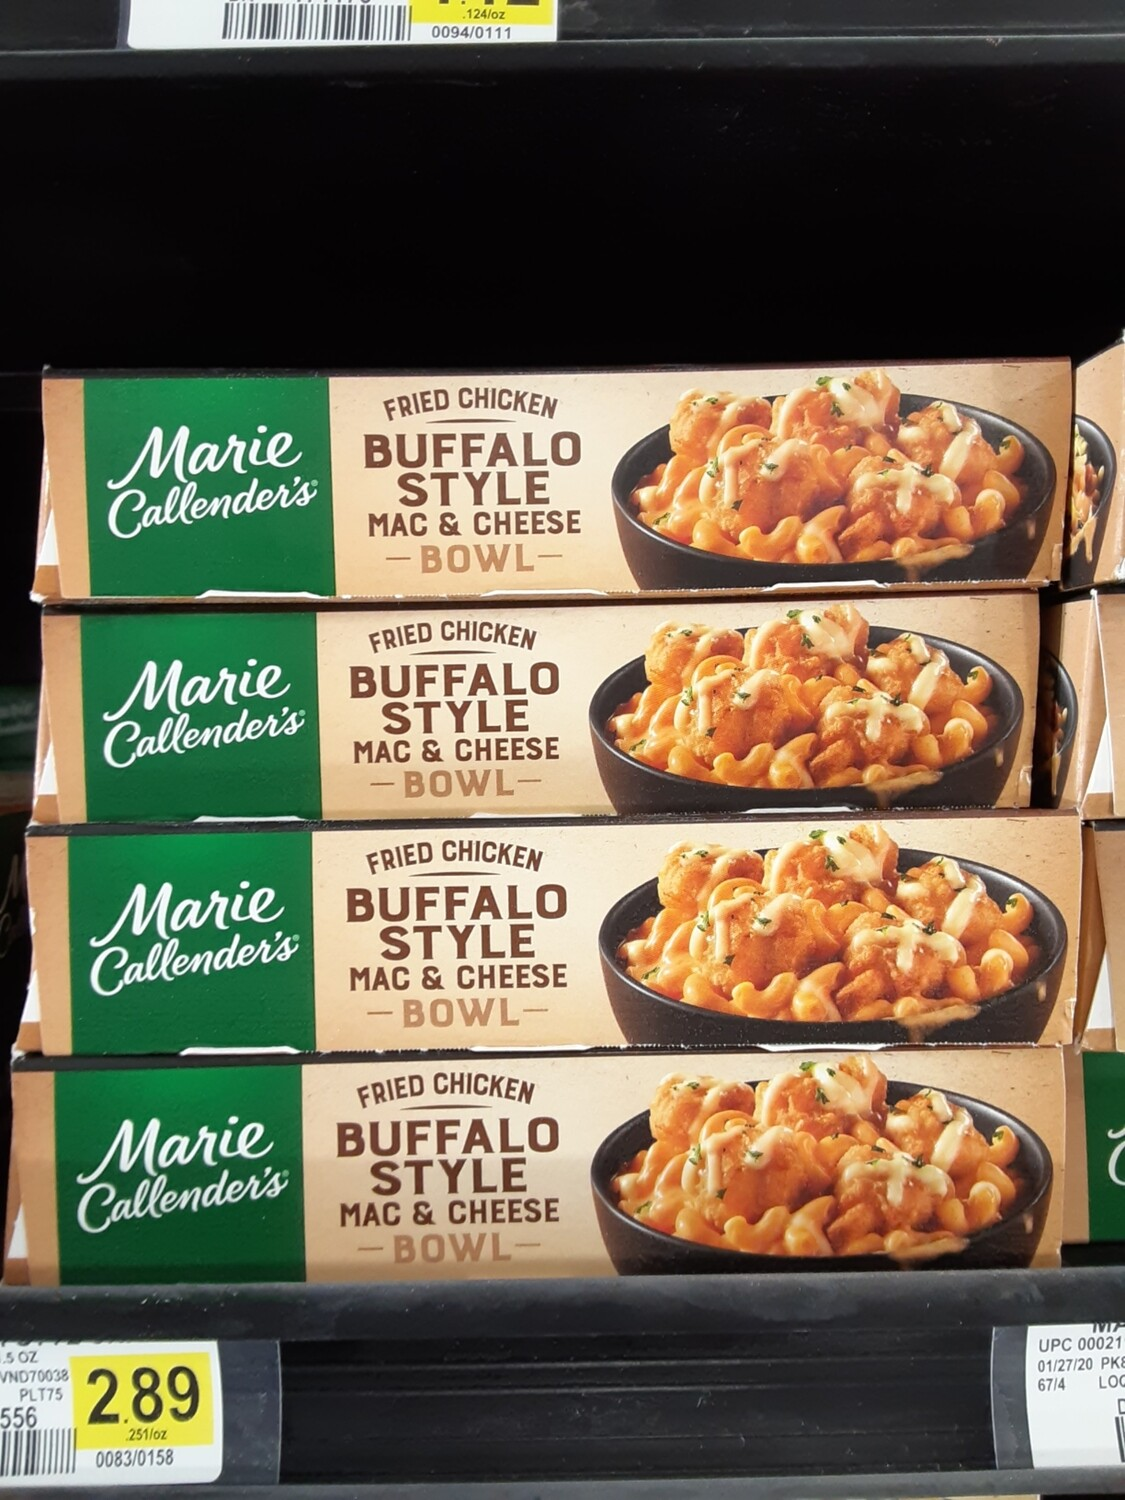 Cash Saver: Marie Callender Fried Chicken Buffalo Style Mac & Cheese Bowl